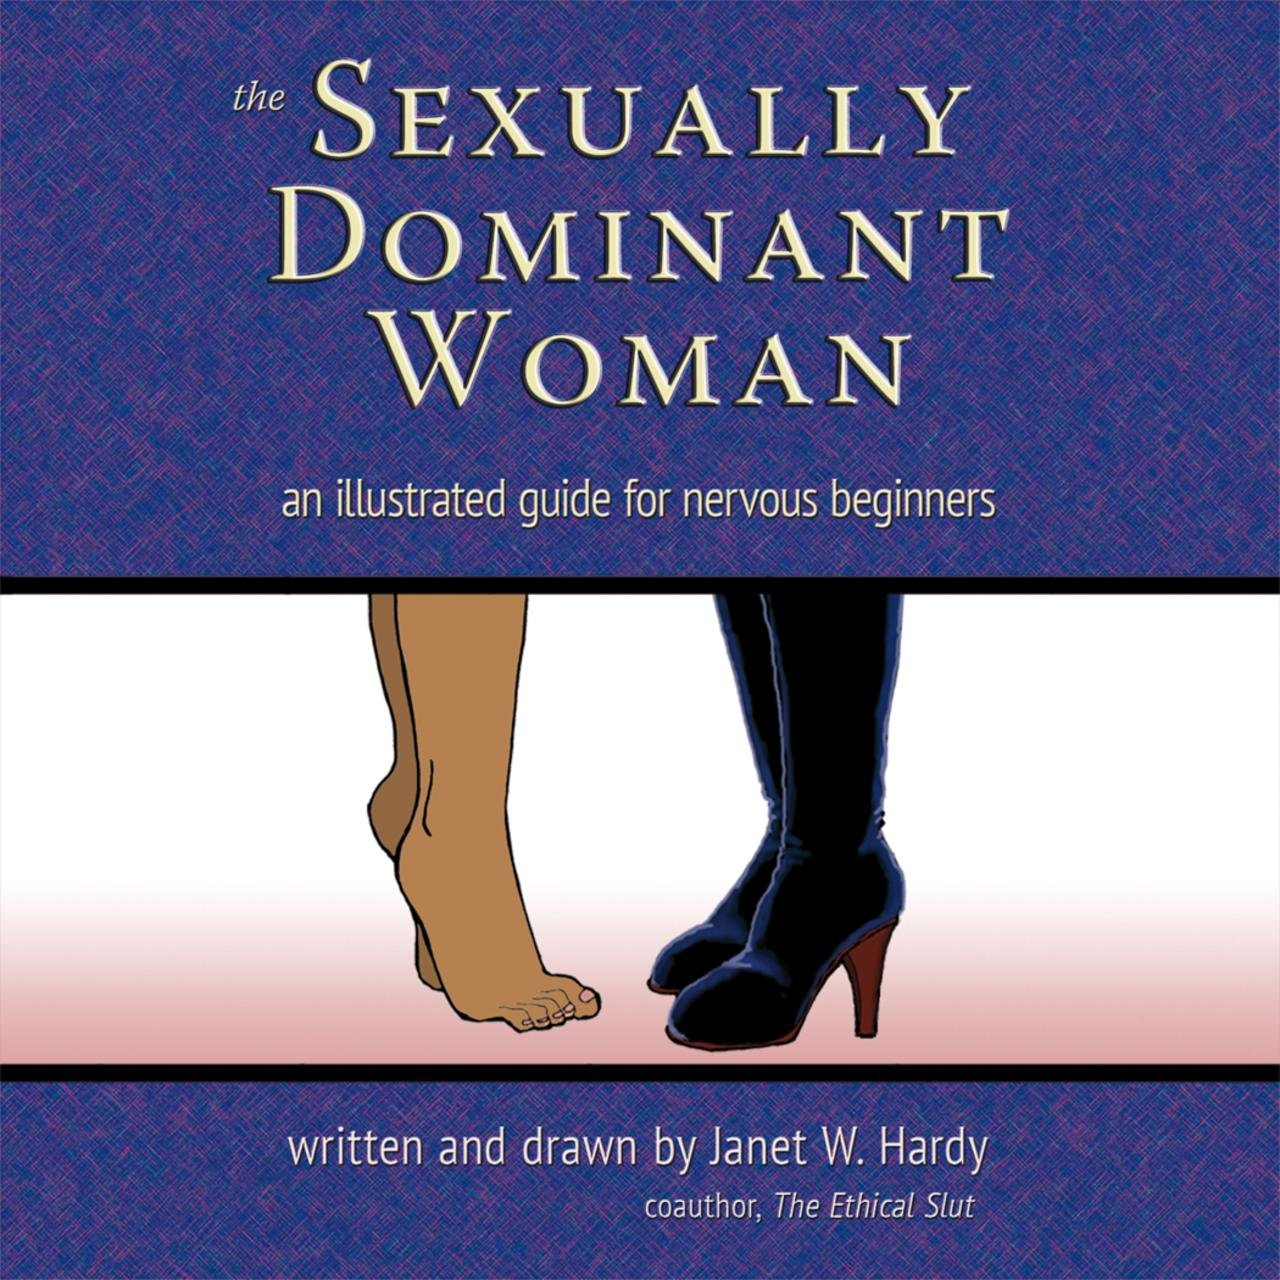 Dominant a woman is what What Do